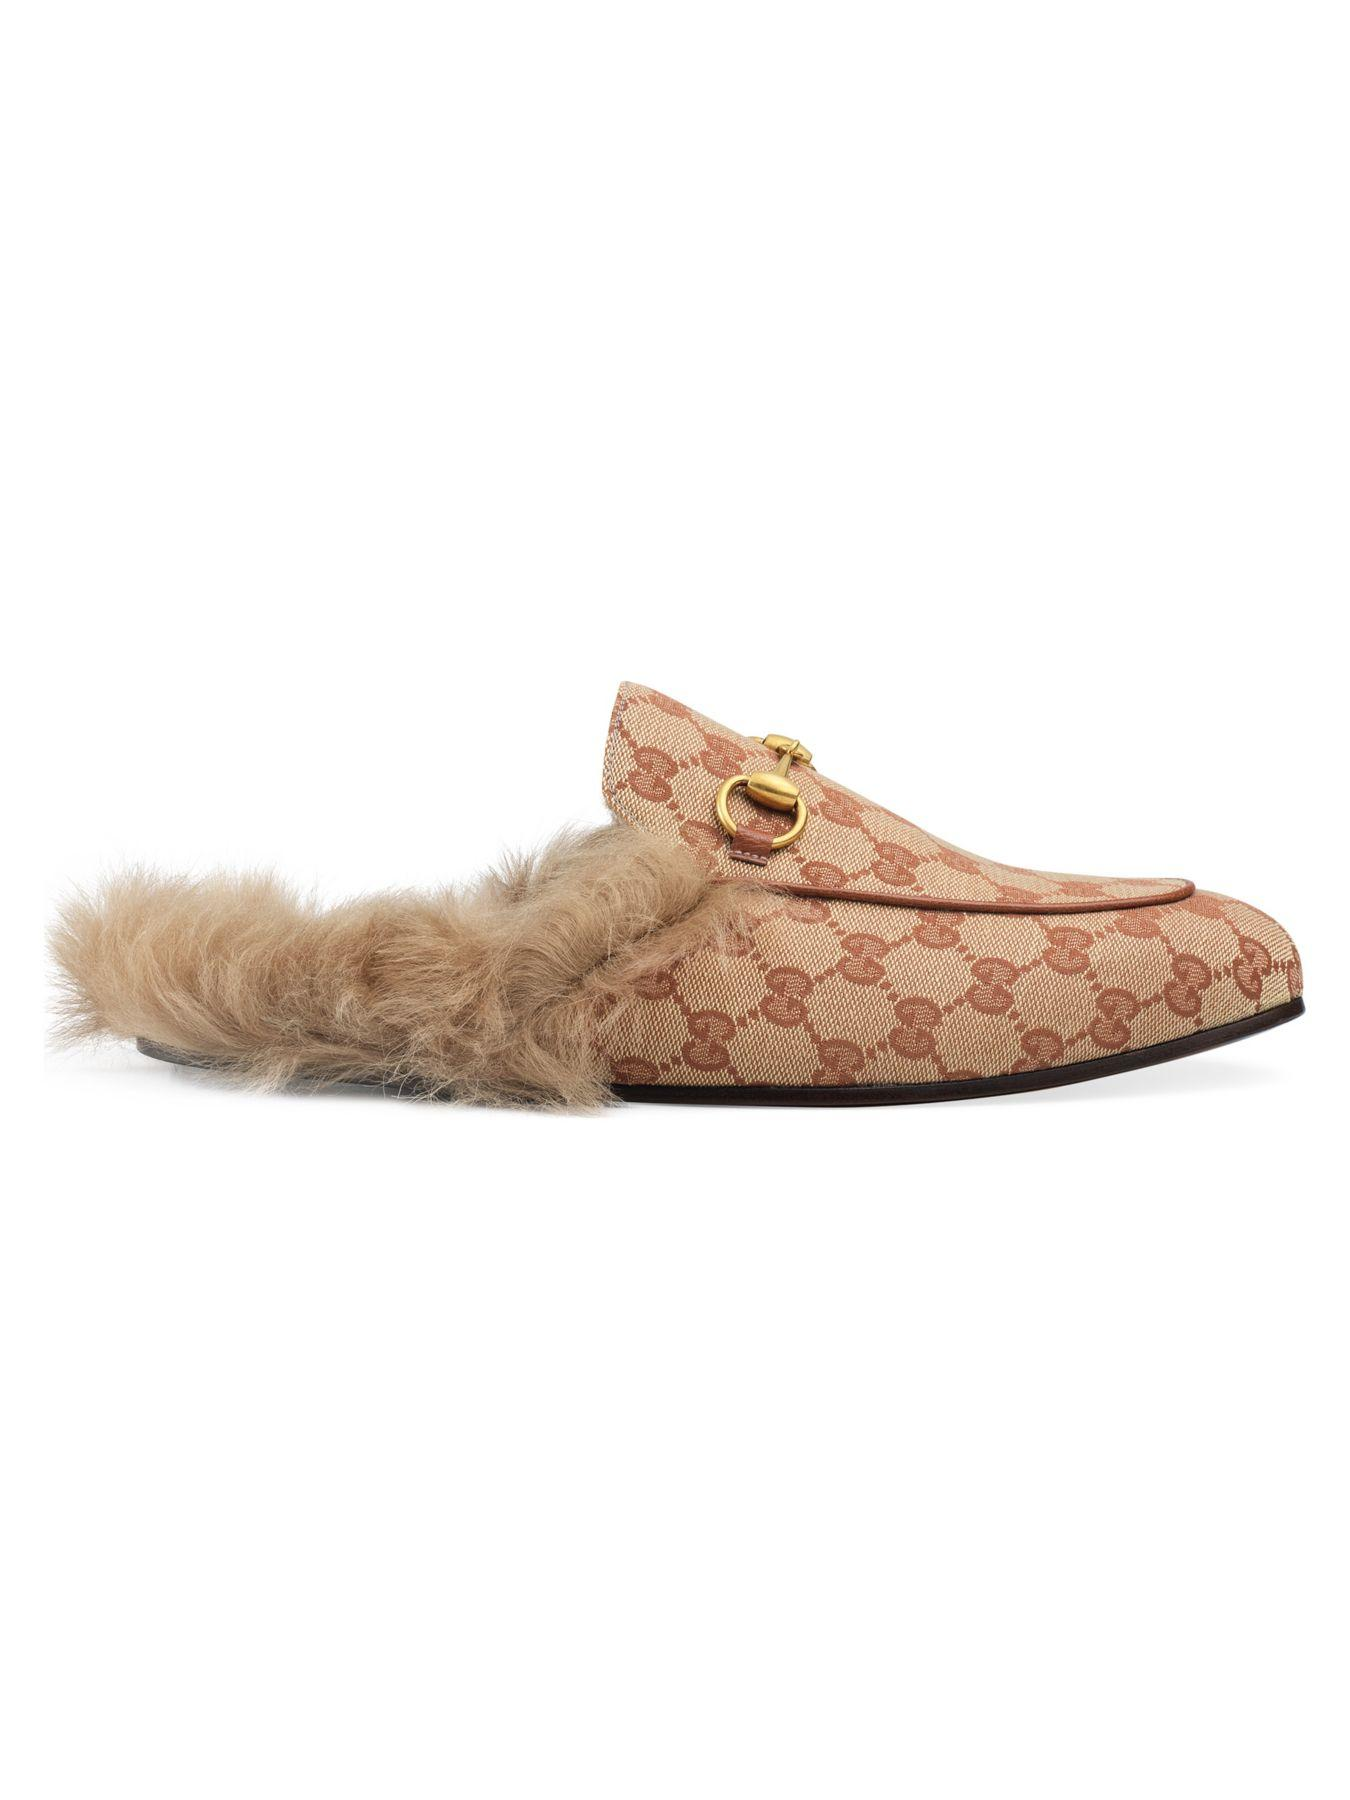 Gucci Men S Princetown Fur Lined Gg Canvas Slippers In Rust Natural Brown For Men Lyst